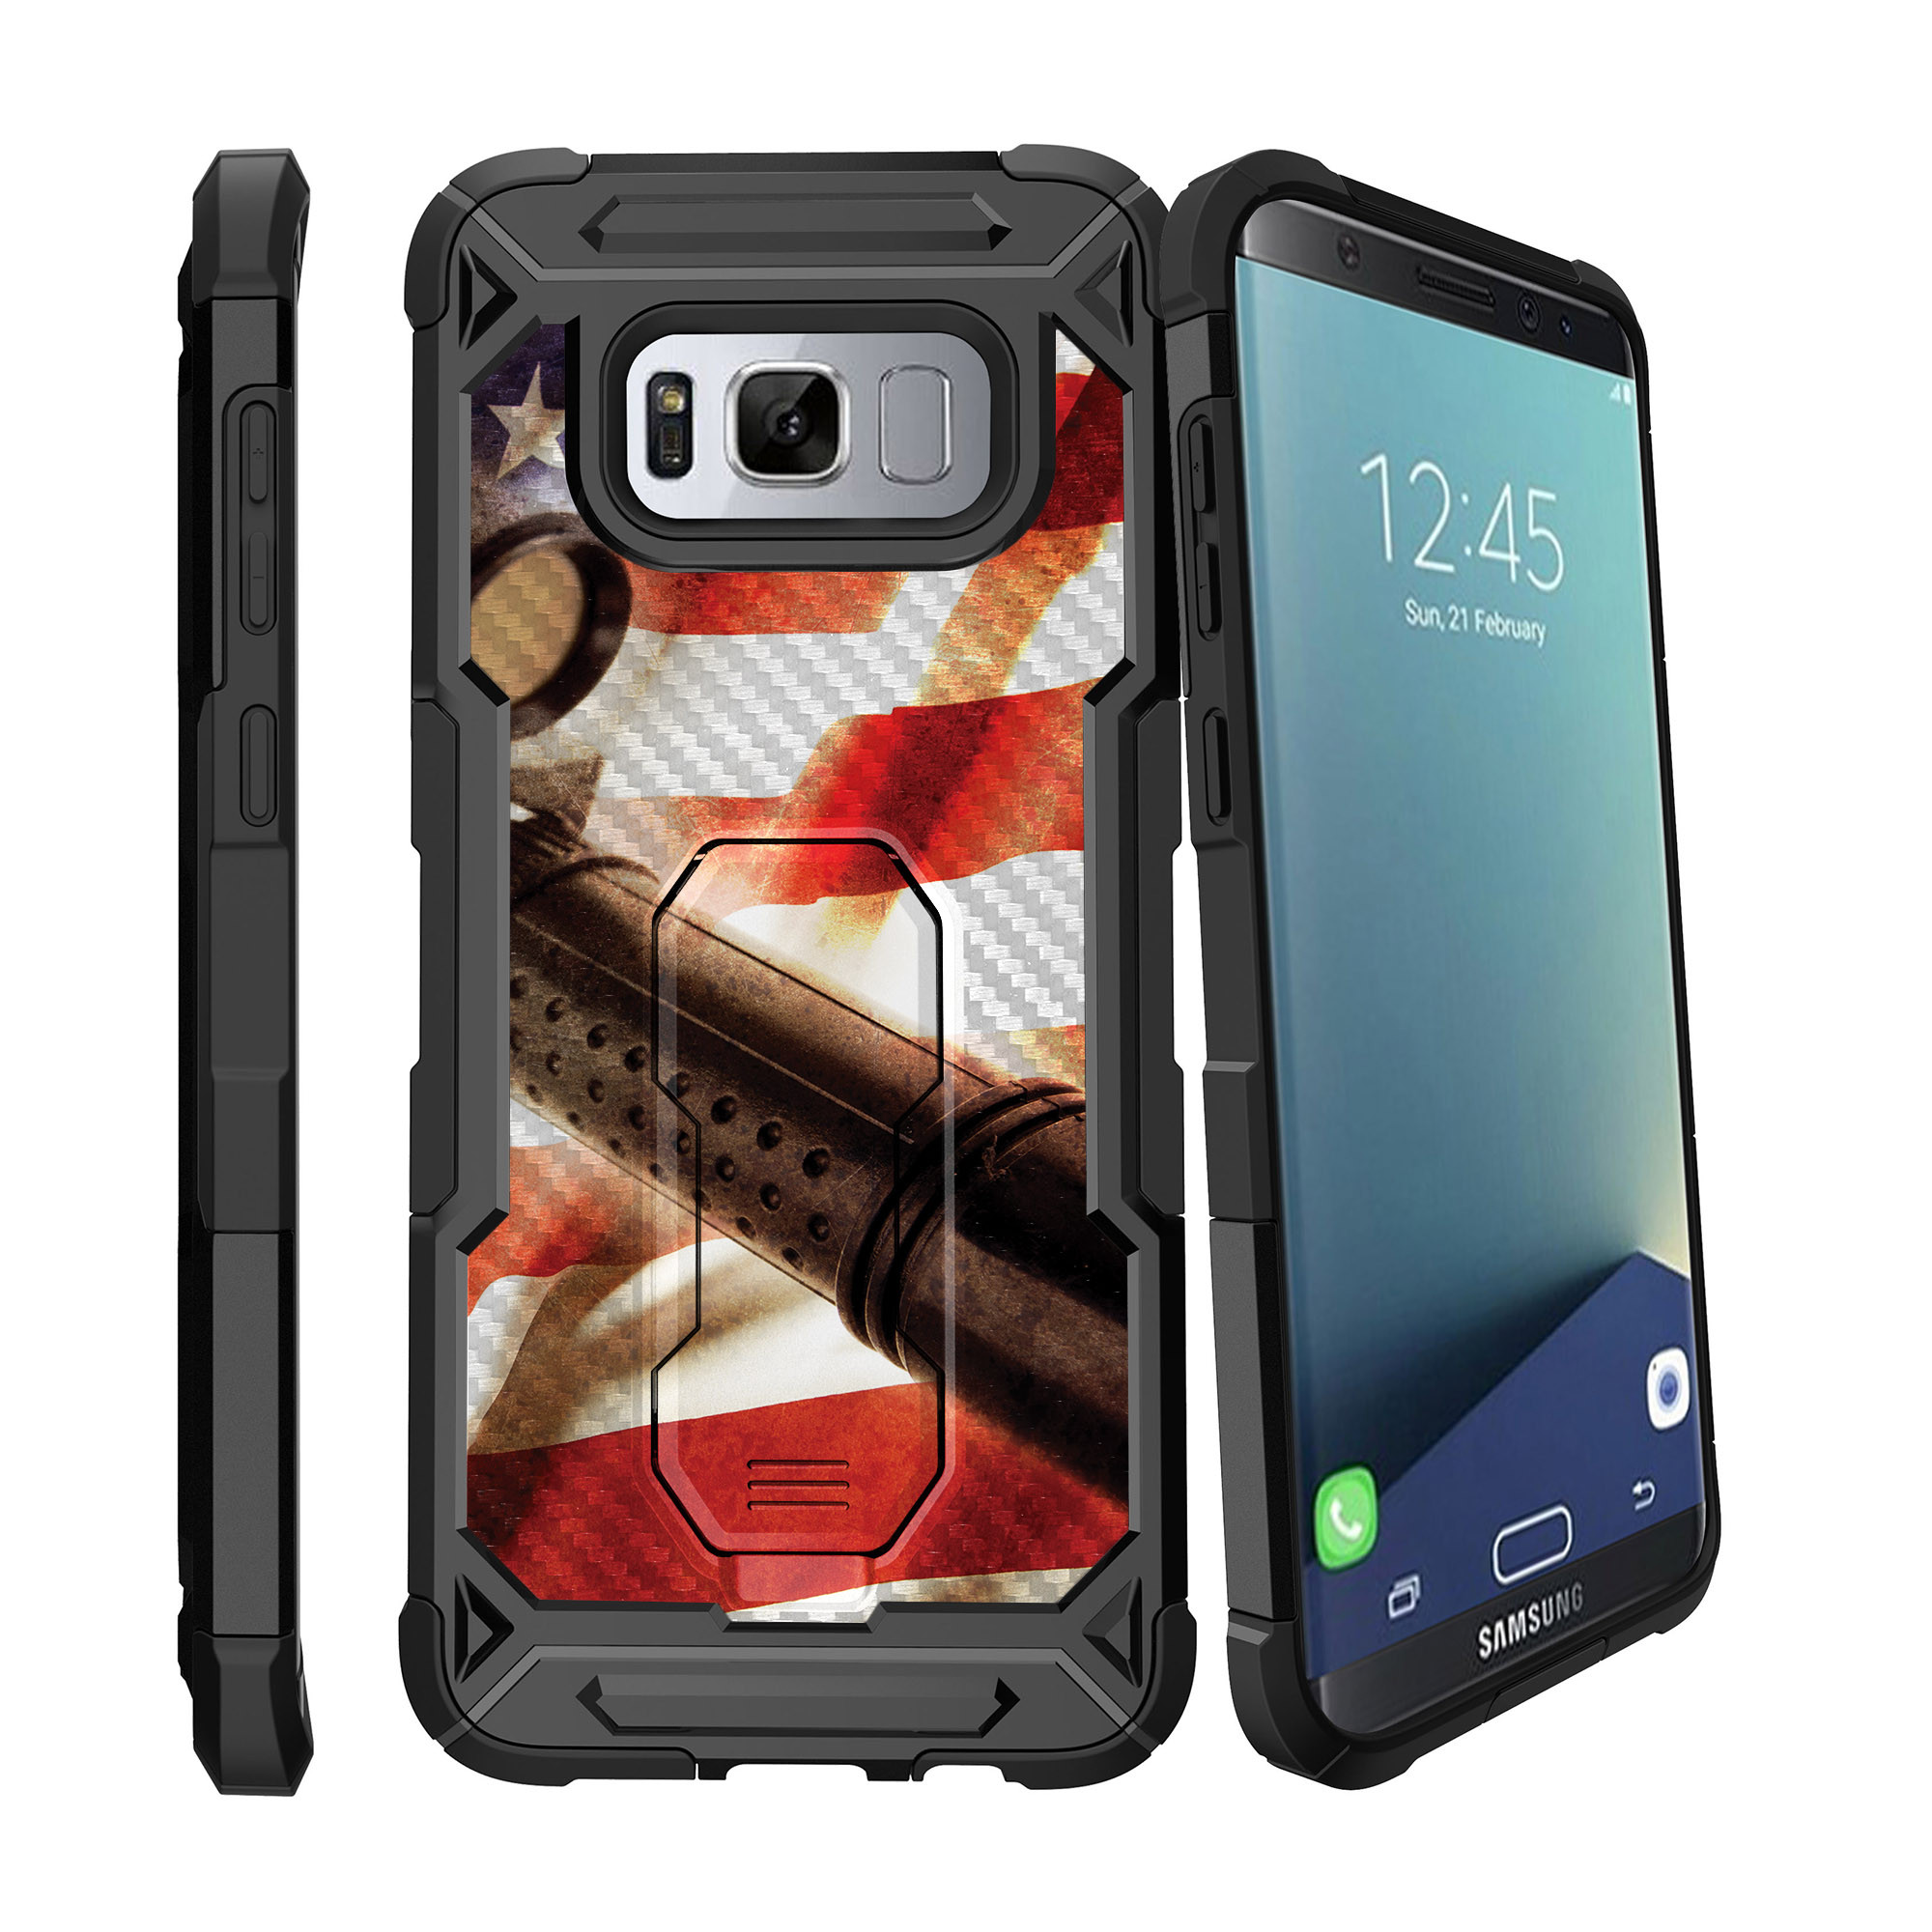 Case for Samsung Galaxy S8 Plus Version [ UFO Defense Case ][Galaxy S8 PLUS SM-G955][Black Silicone] Carbon Fiber Texture Case with Holster + Stand FireArm Collection